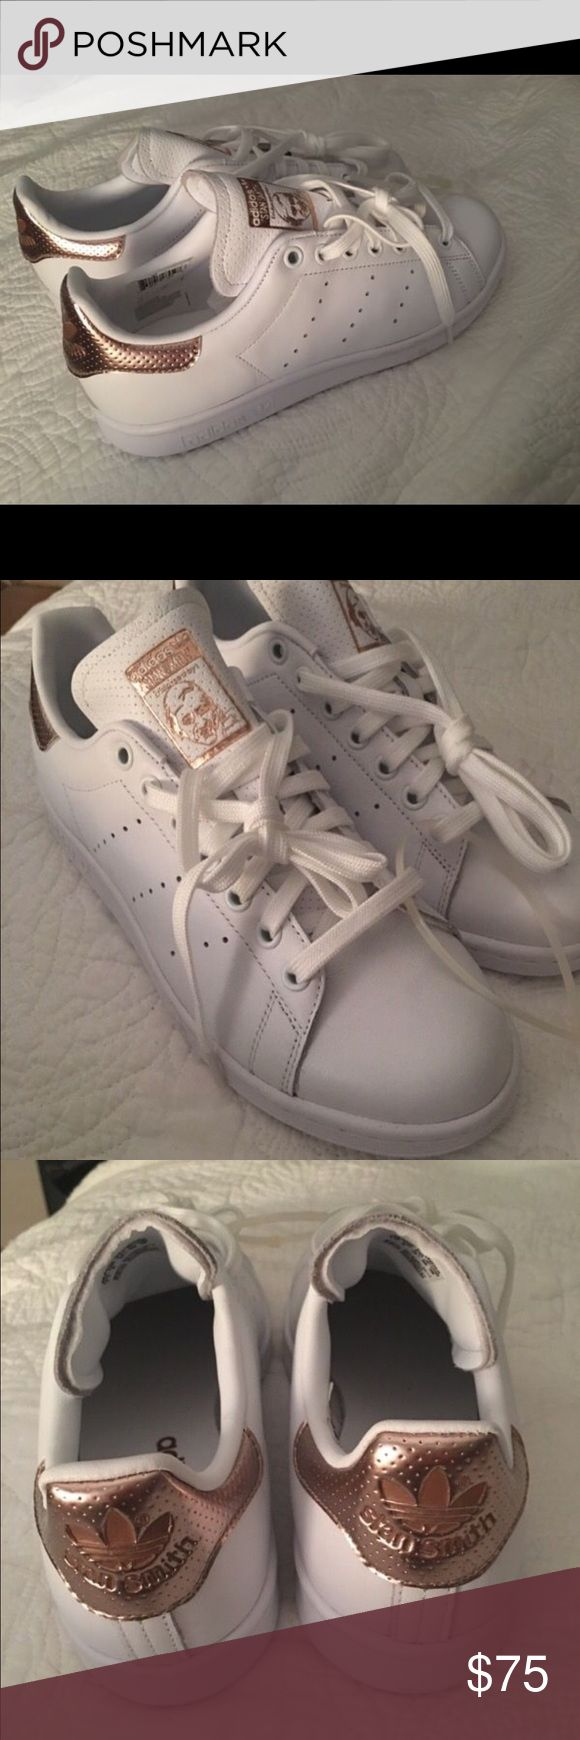 Rose Gold Stan Smith Adidas Brand new Stan Smith w/ Rose Gold detailing on tongue and heel.  (Tag says size 7.5, but will fit women's 8-8/12) Adidas Shoes Athletic Shoes